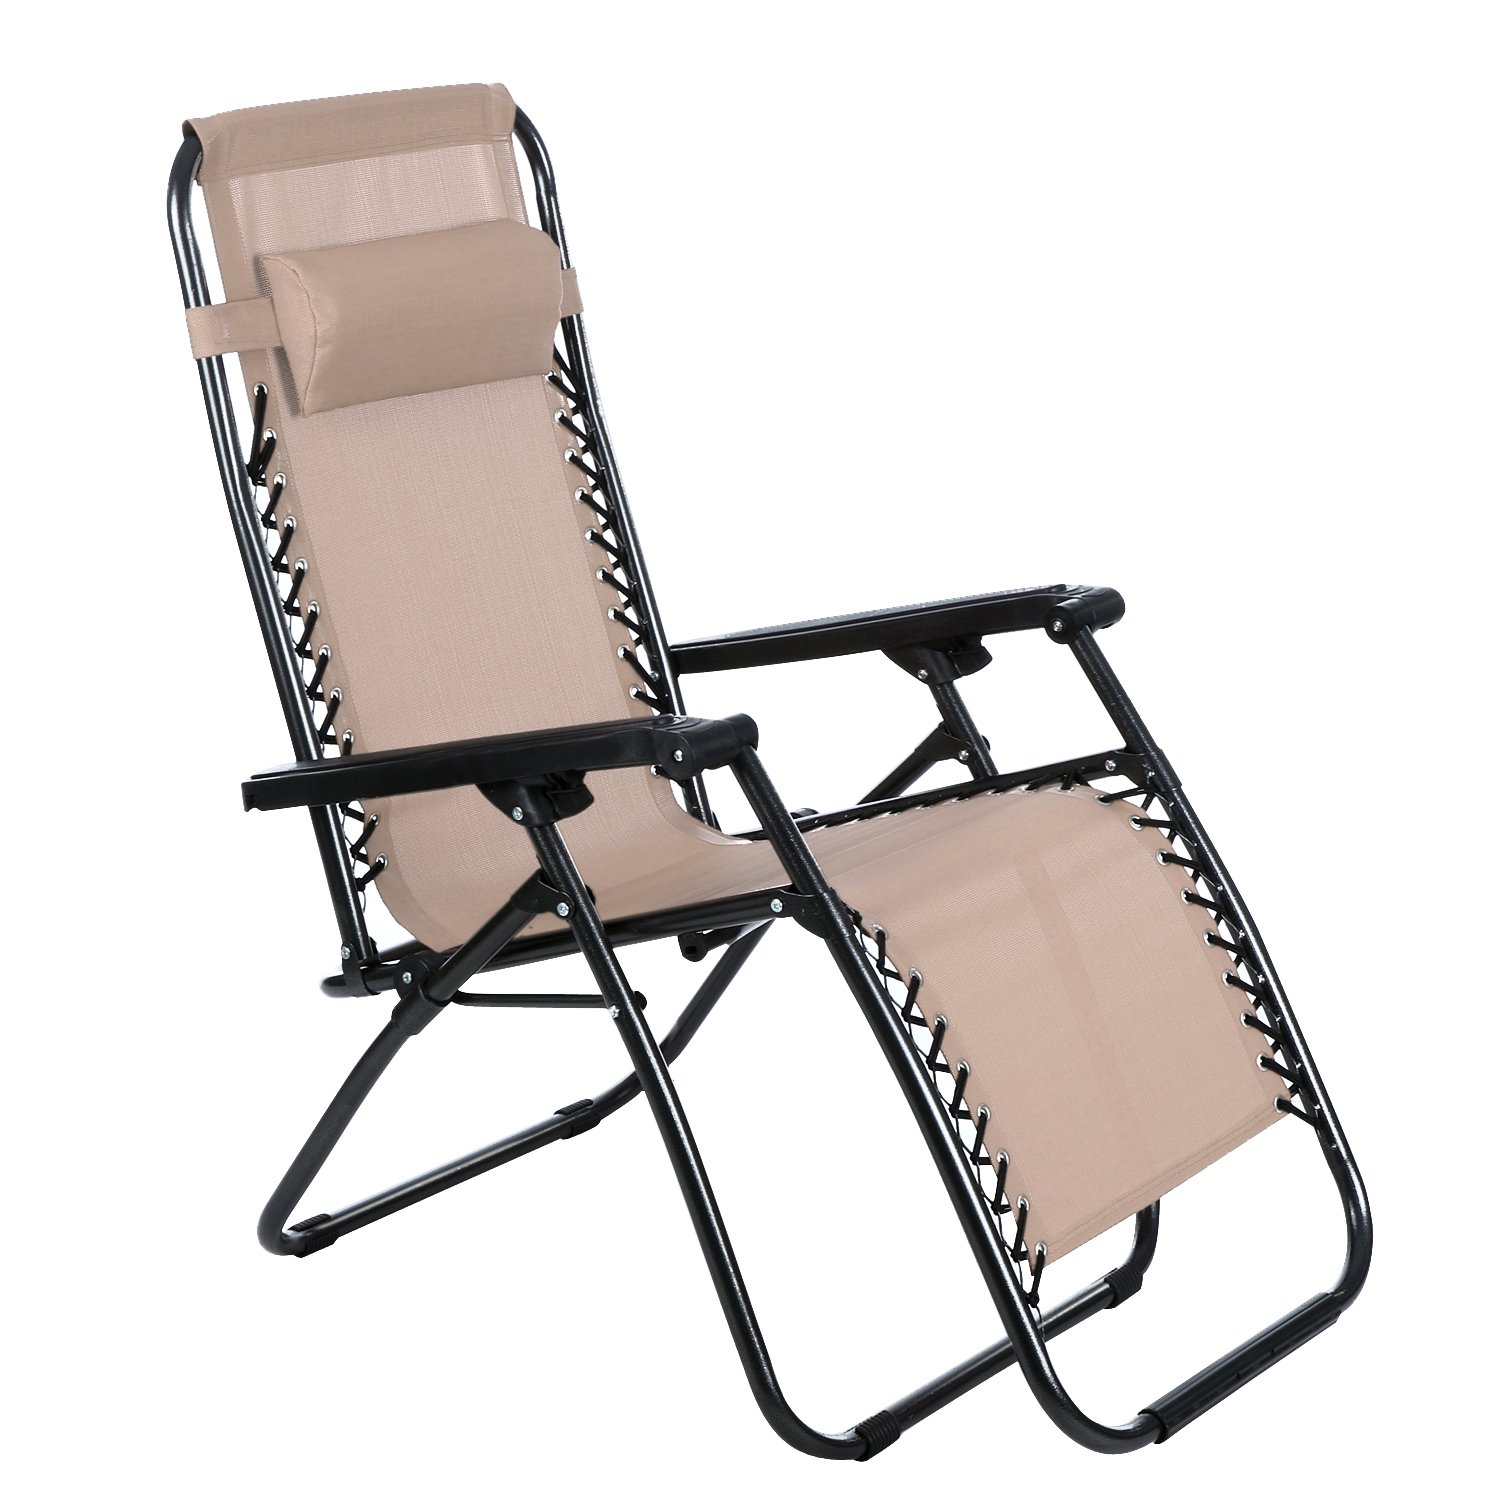 Amazon.com : YUEBO Zero Gravity Chair Folding Recliner Chair, Textoline Lawn Recliner Sun Lounger with Adjustable Pillow for Indoor & Outdoor : Garden & ...